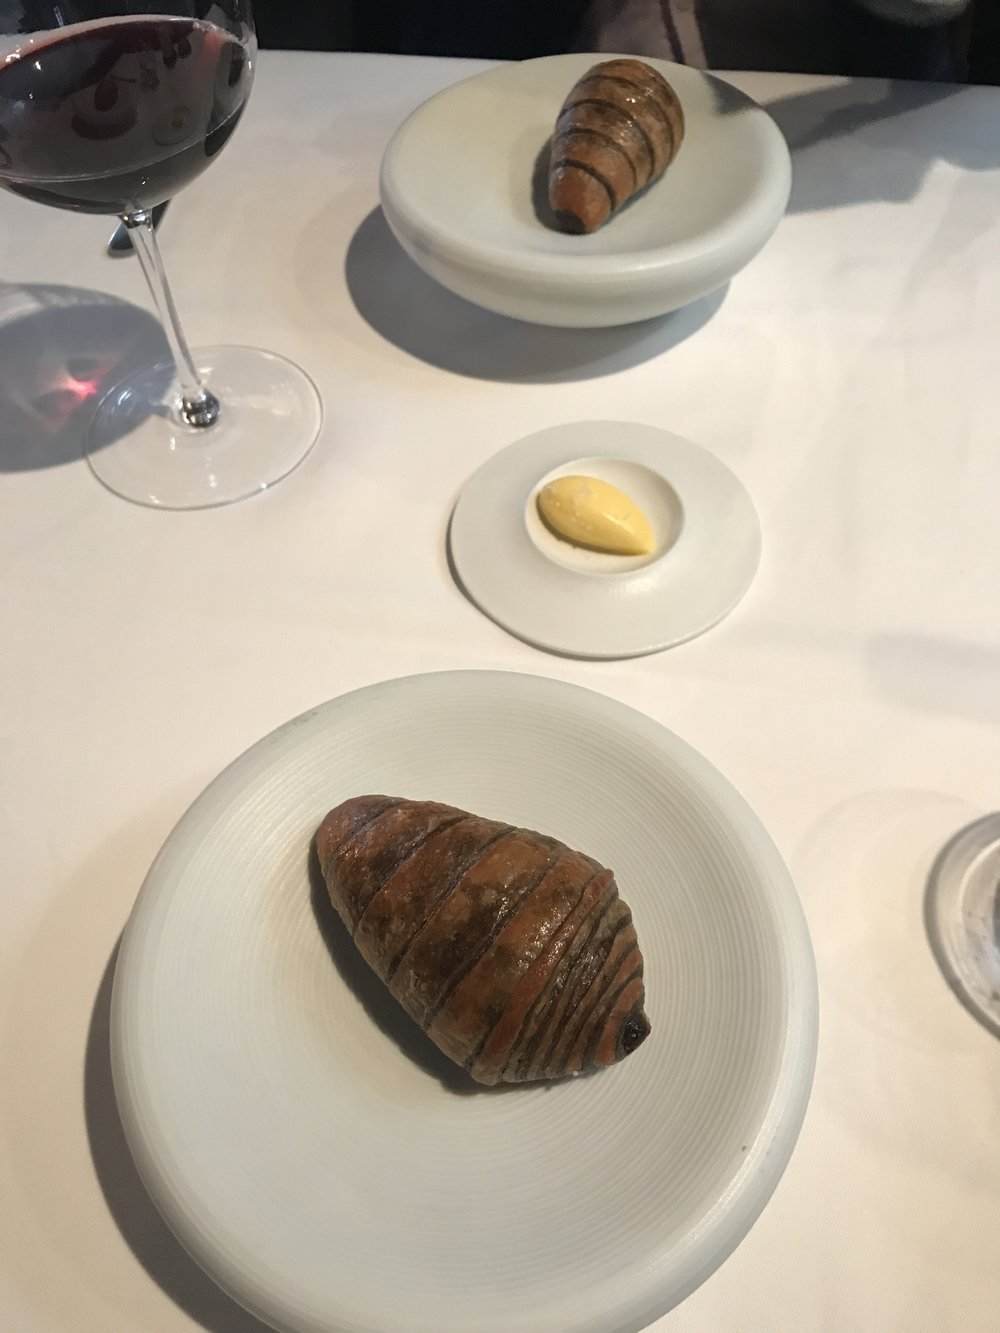 Course 6-Bread and Butter